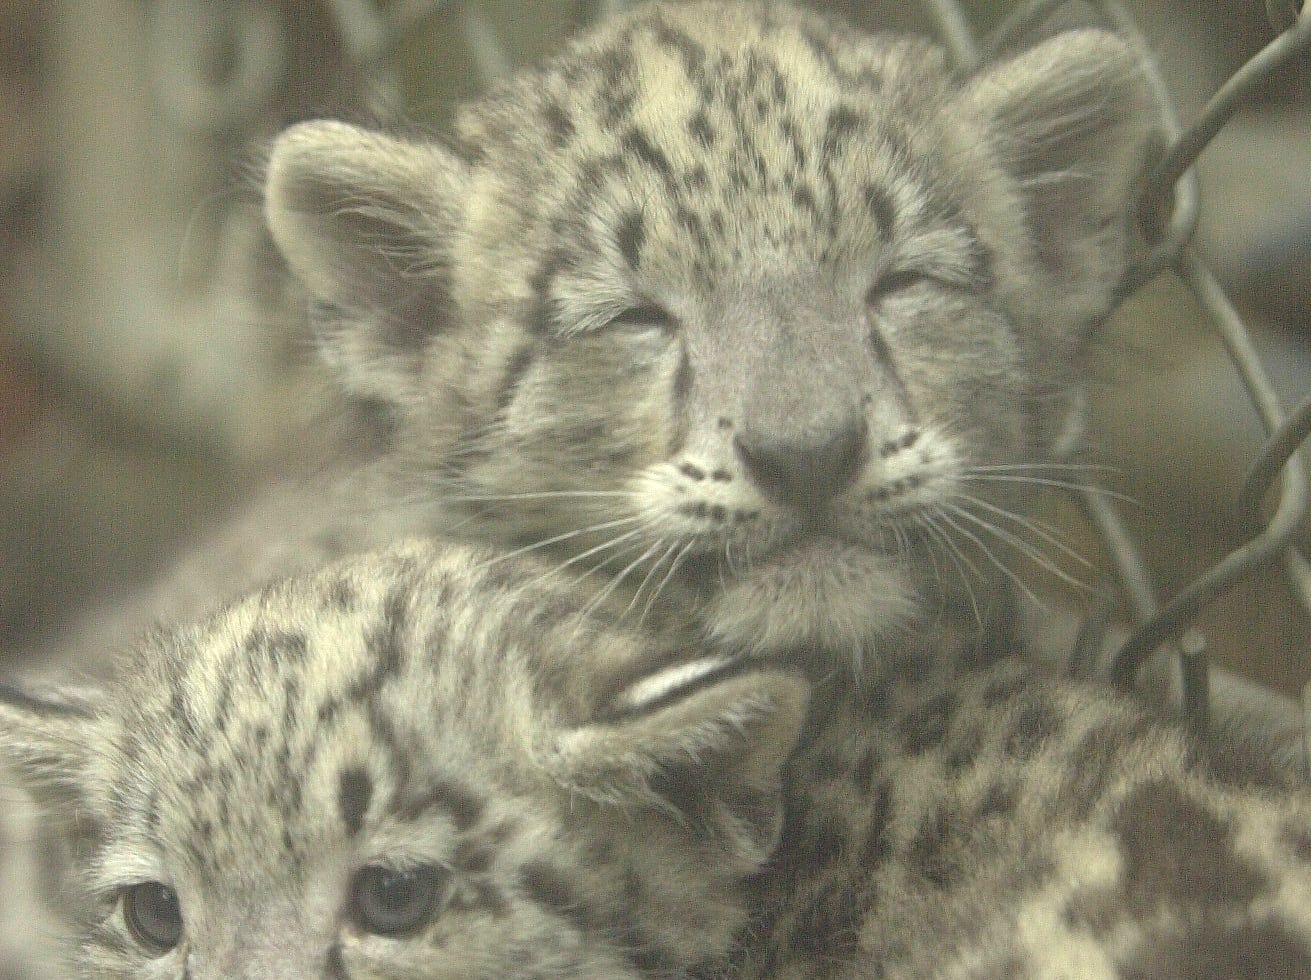 Two month-old snow leopards Breaux, top, and Paige snuggle together Wednesday at the Knoxville Zoo. The pair are first snow leopards born at the zoo in 14 years and made their public debut on Wednesday. 2003.